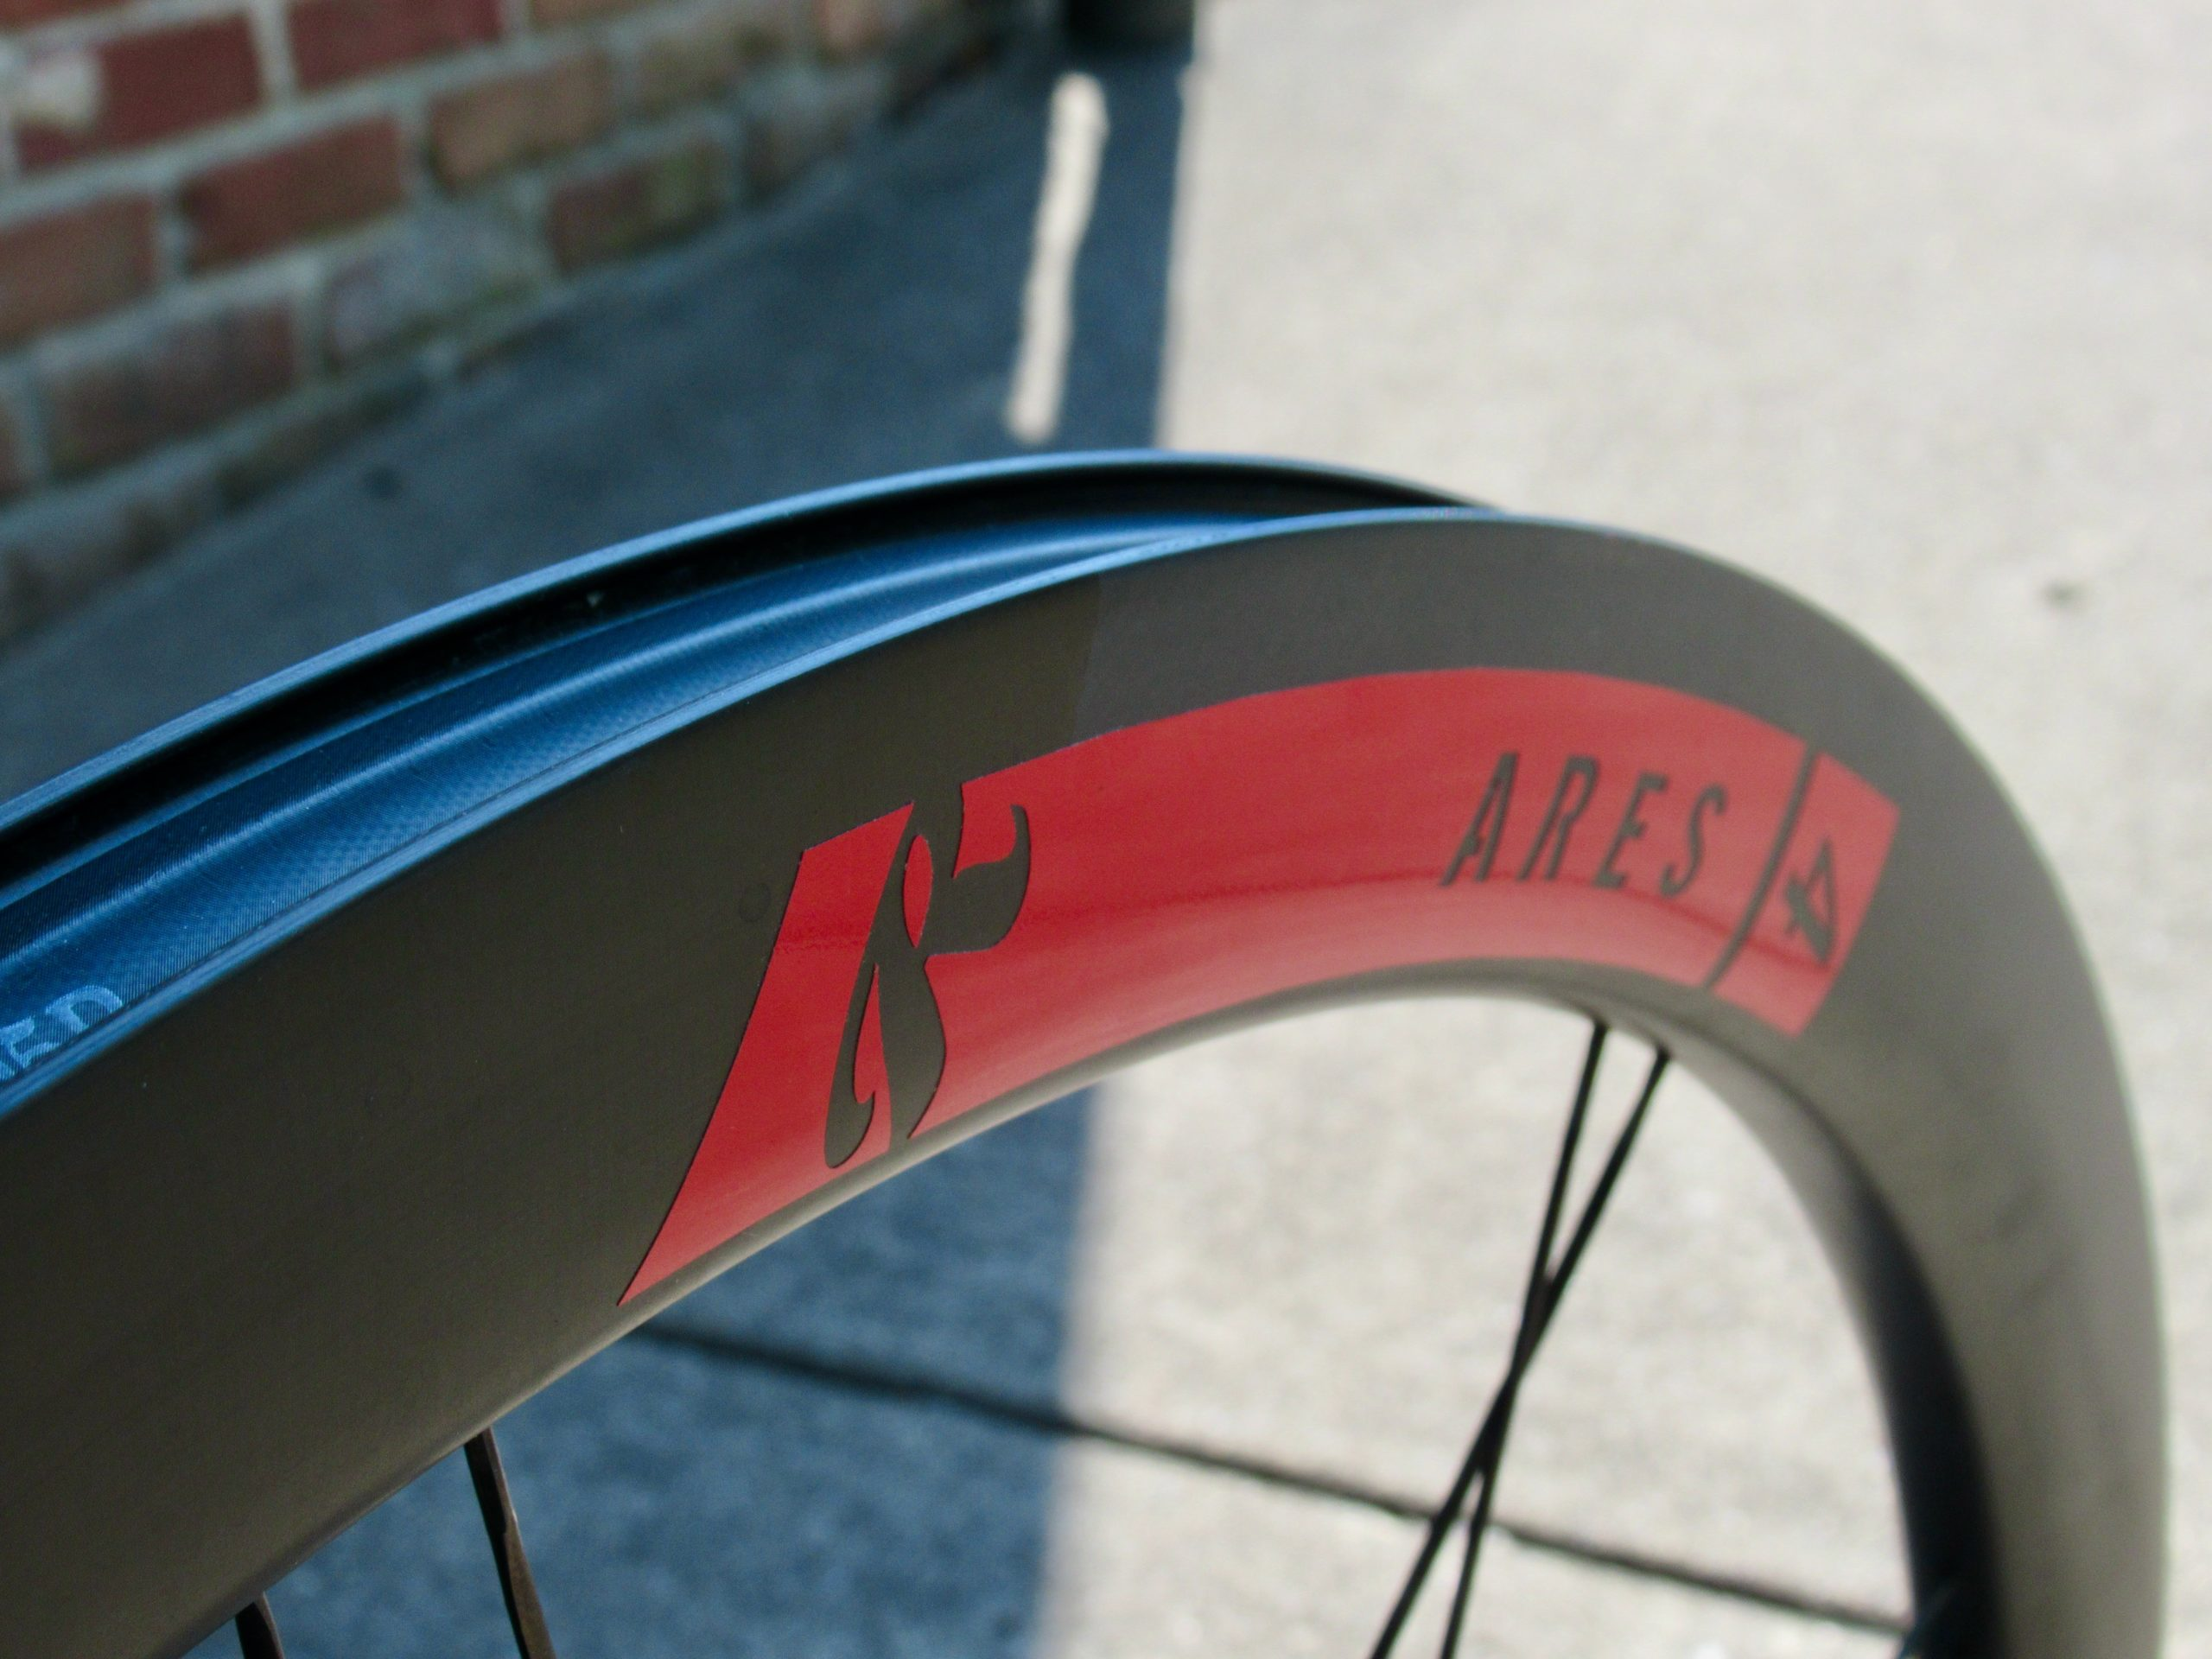 Review: Rolf Prima Ares 4 Disc wheels are fast on the road and gravel - Bikerumor